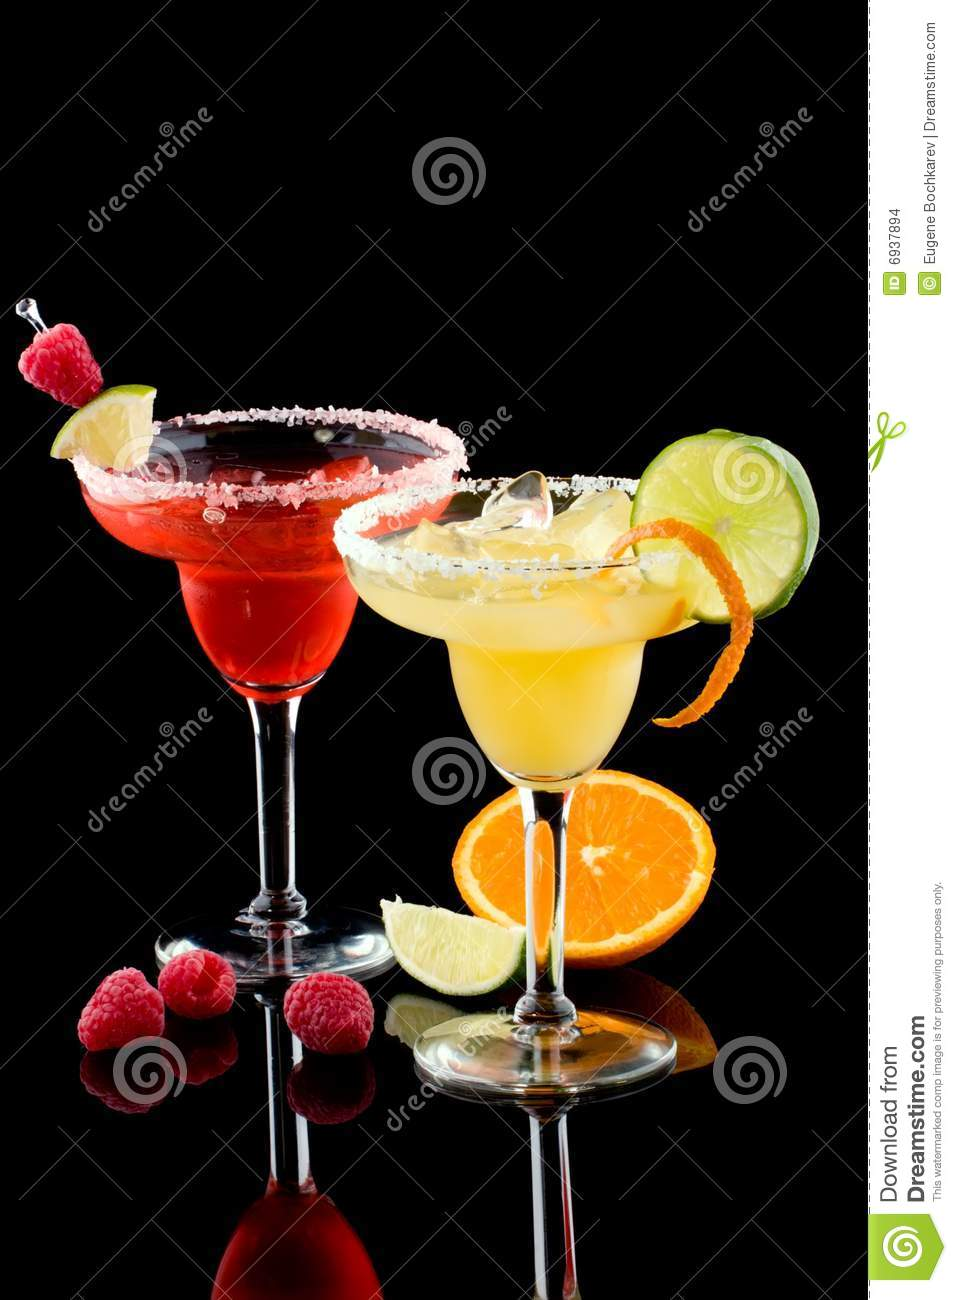 Orange and Raspberry margaritas - Most popular co